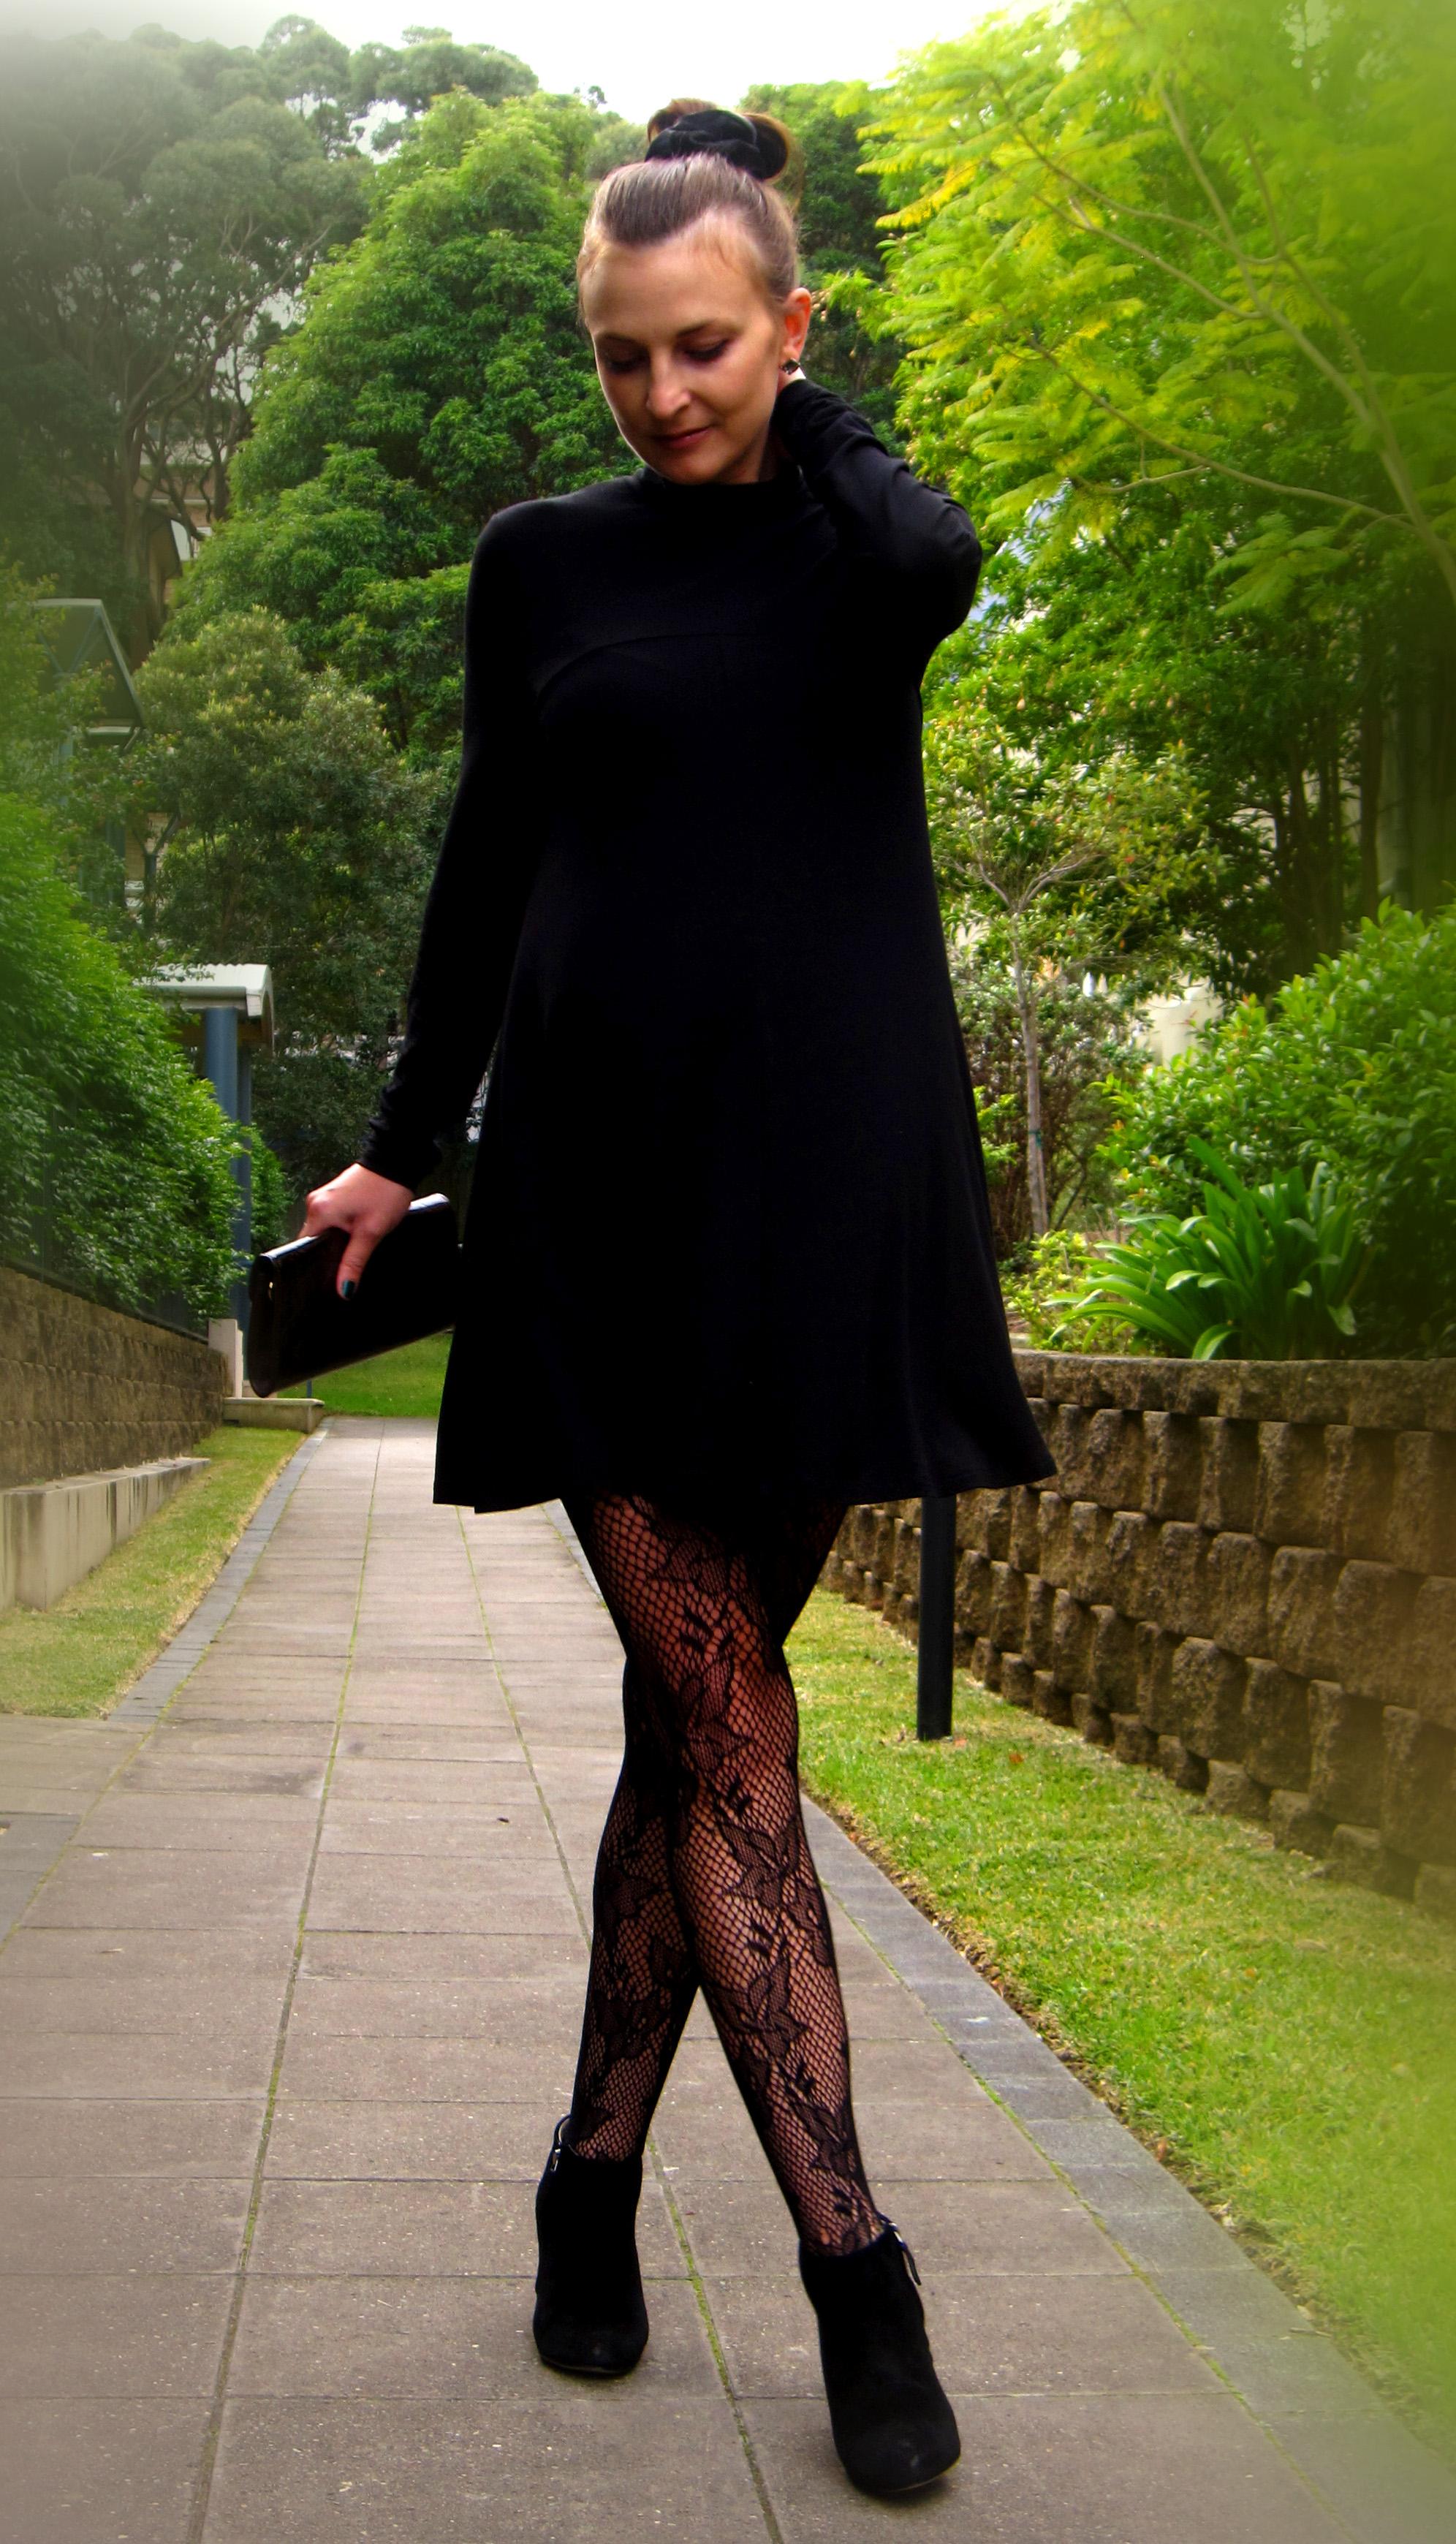 Lace dress and stockings